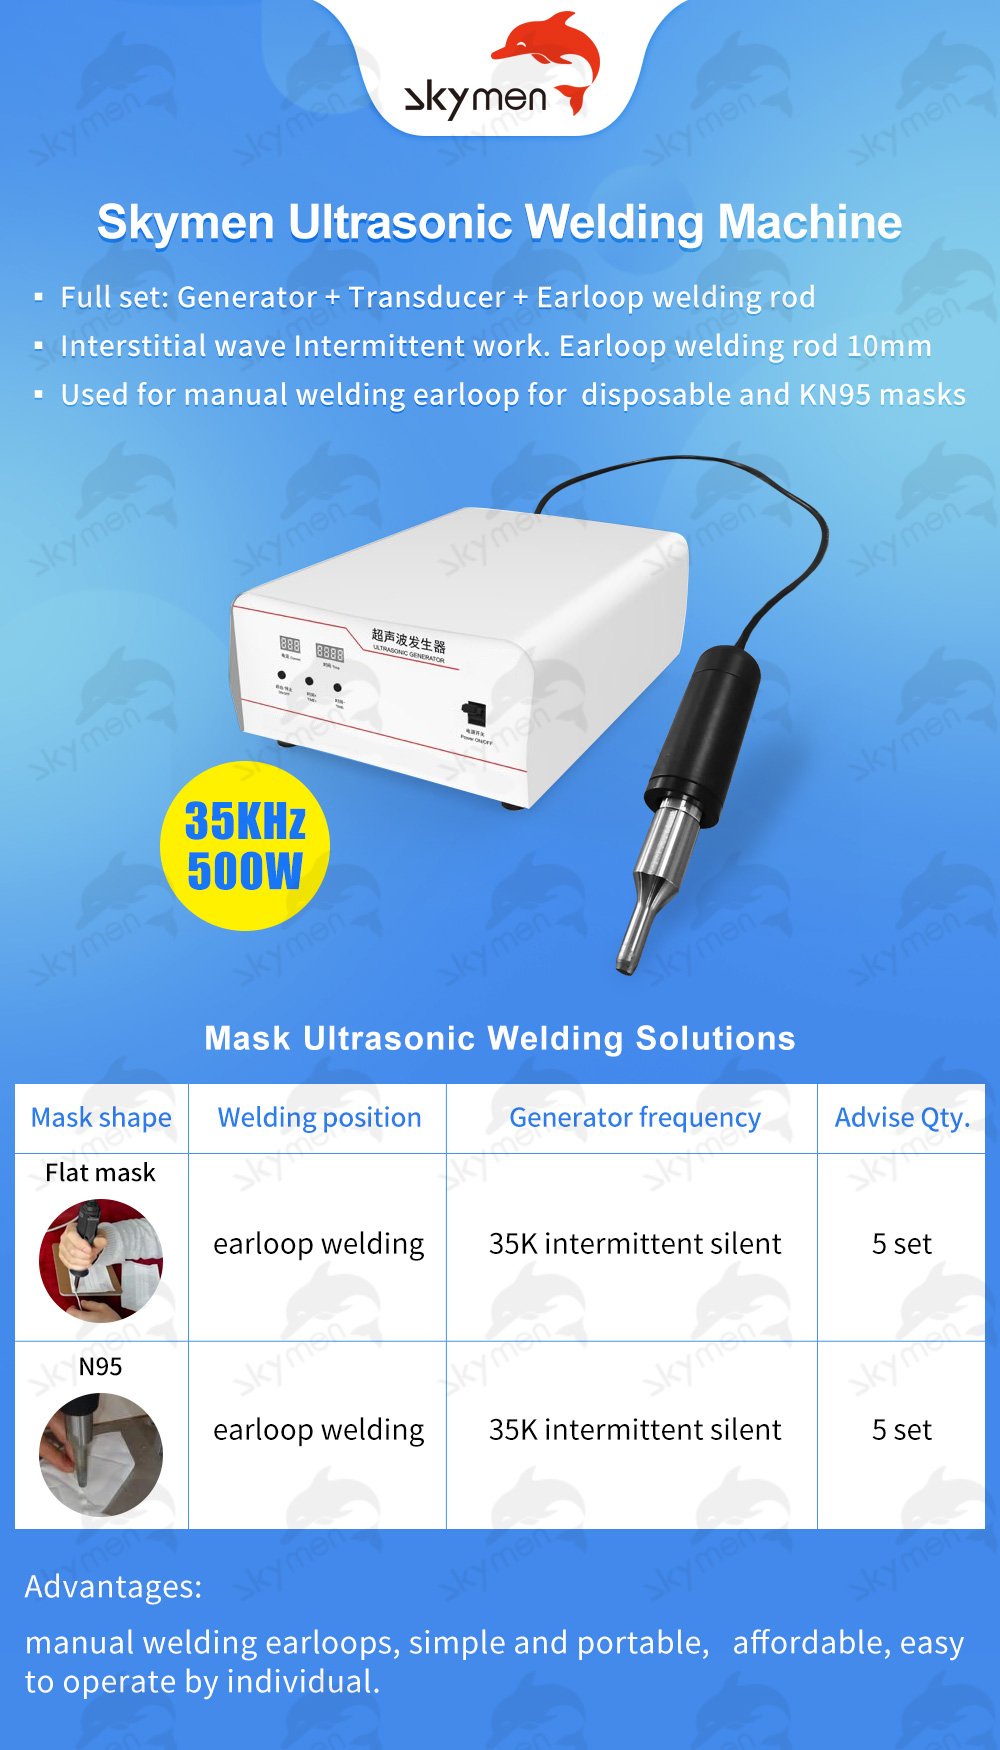 Ultrasonic Plastic Welding Machine With English Manual For Disposable And KN95 Masks 6